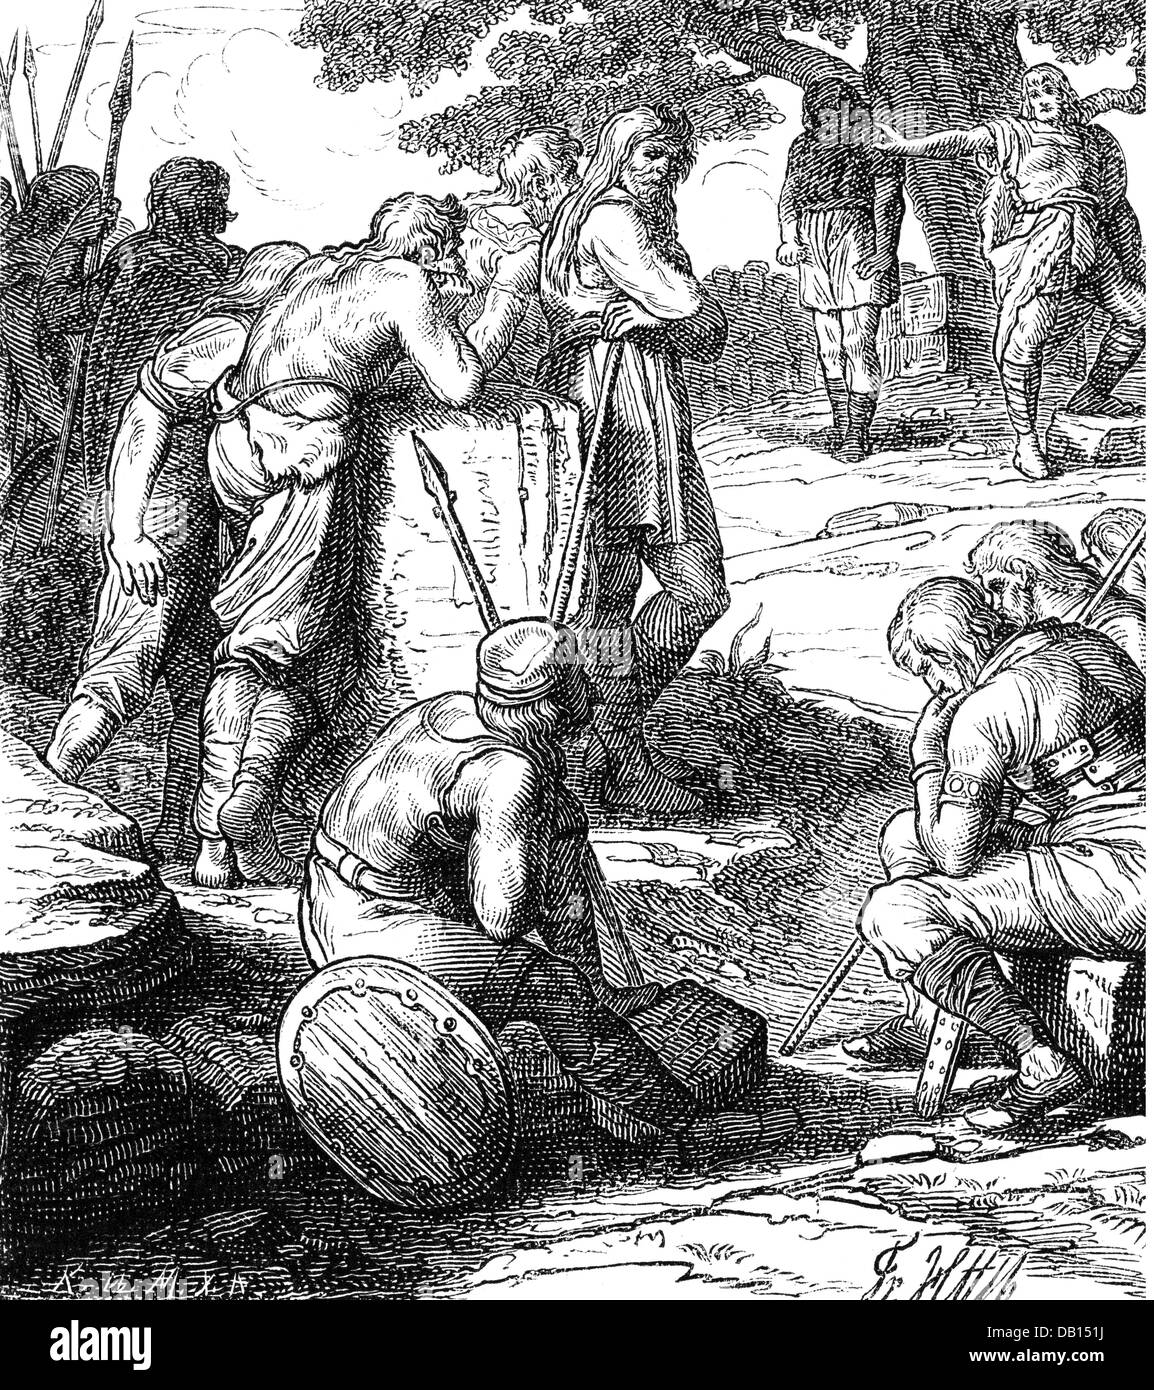 ancient world, Germanics, justice, accusation of a group of hundred before the people's meeting, wood engraving, - Stock Image